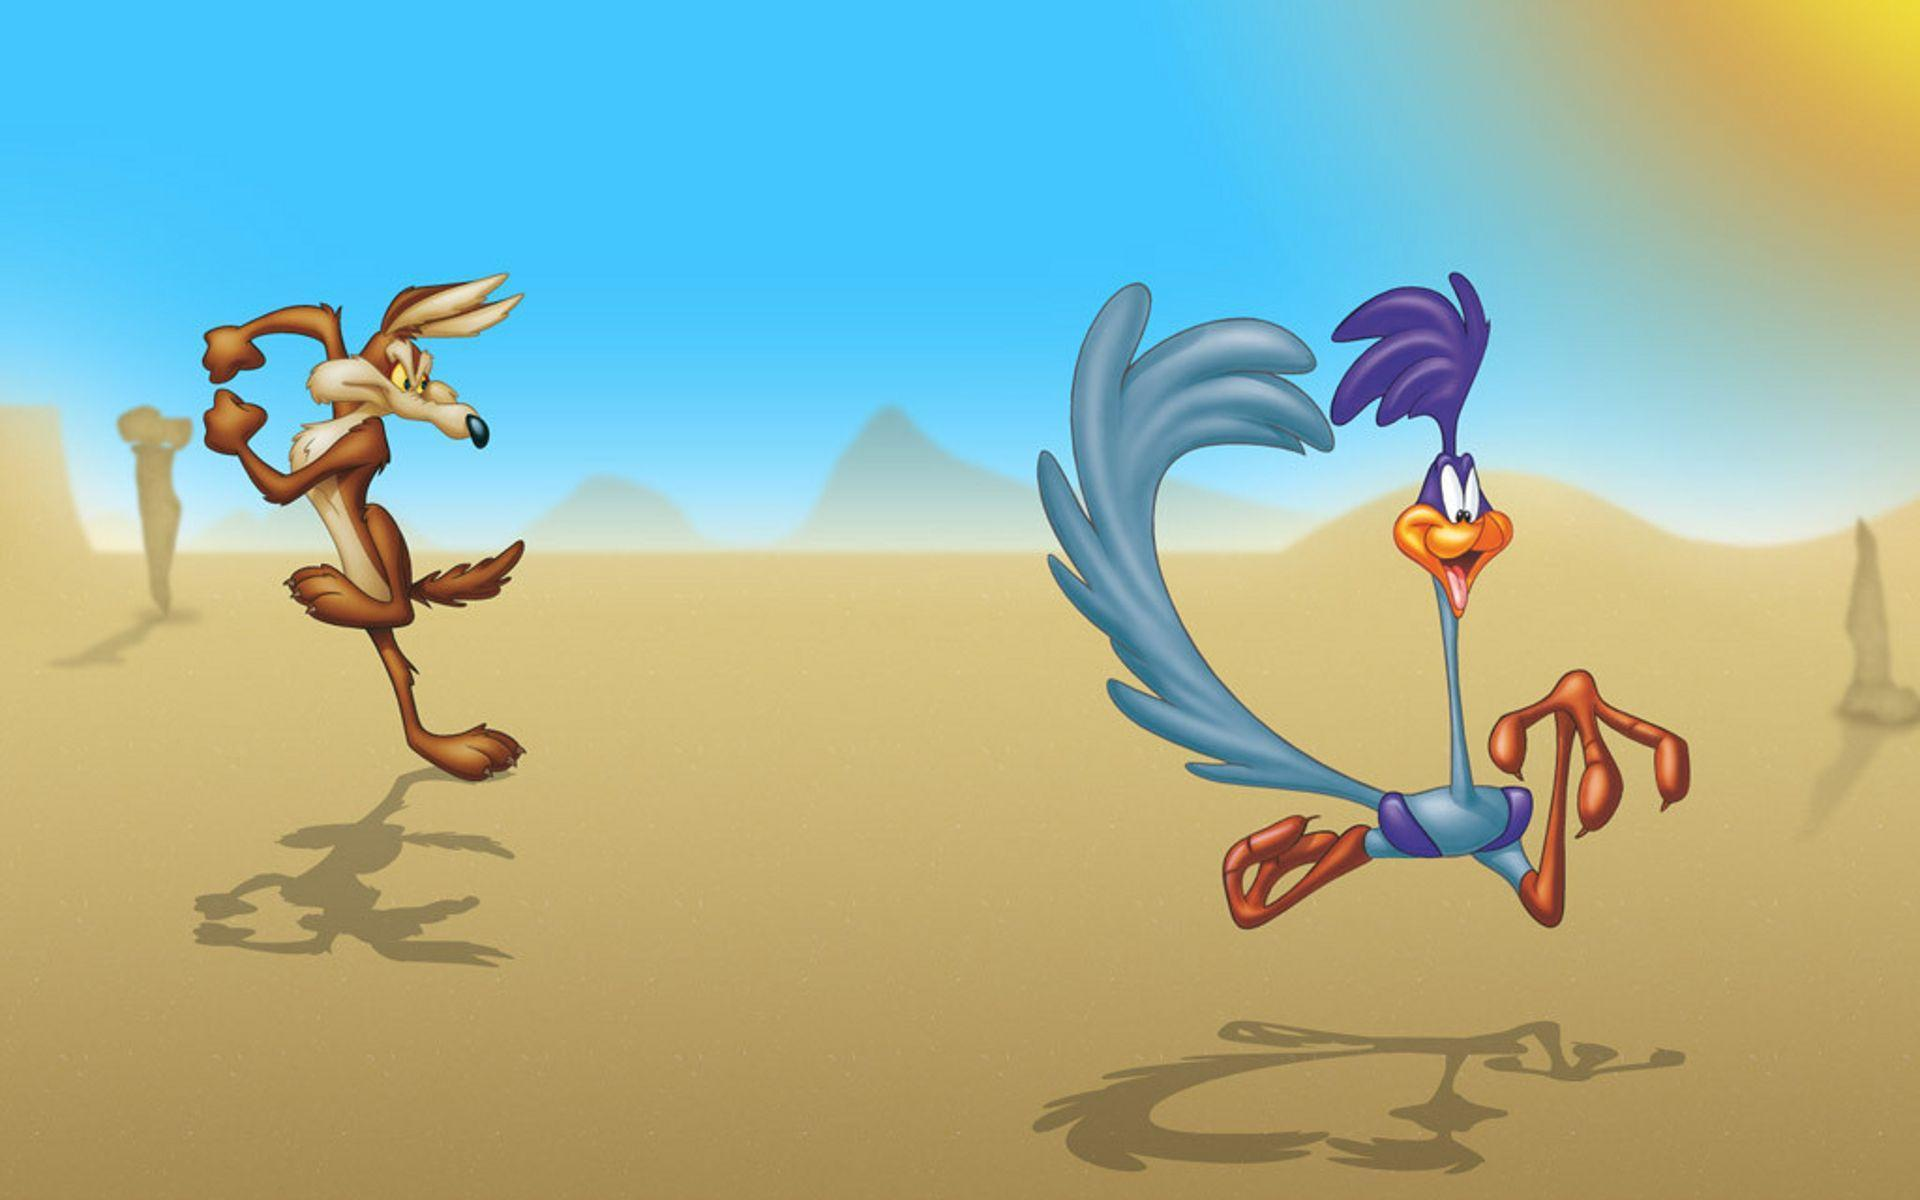 Looney Toons Backgrounds - Wallpaper Cave